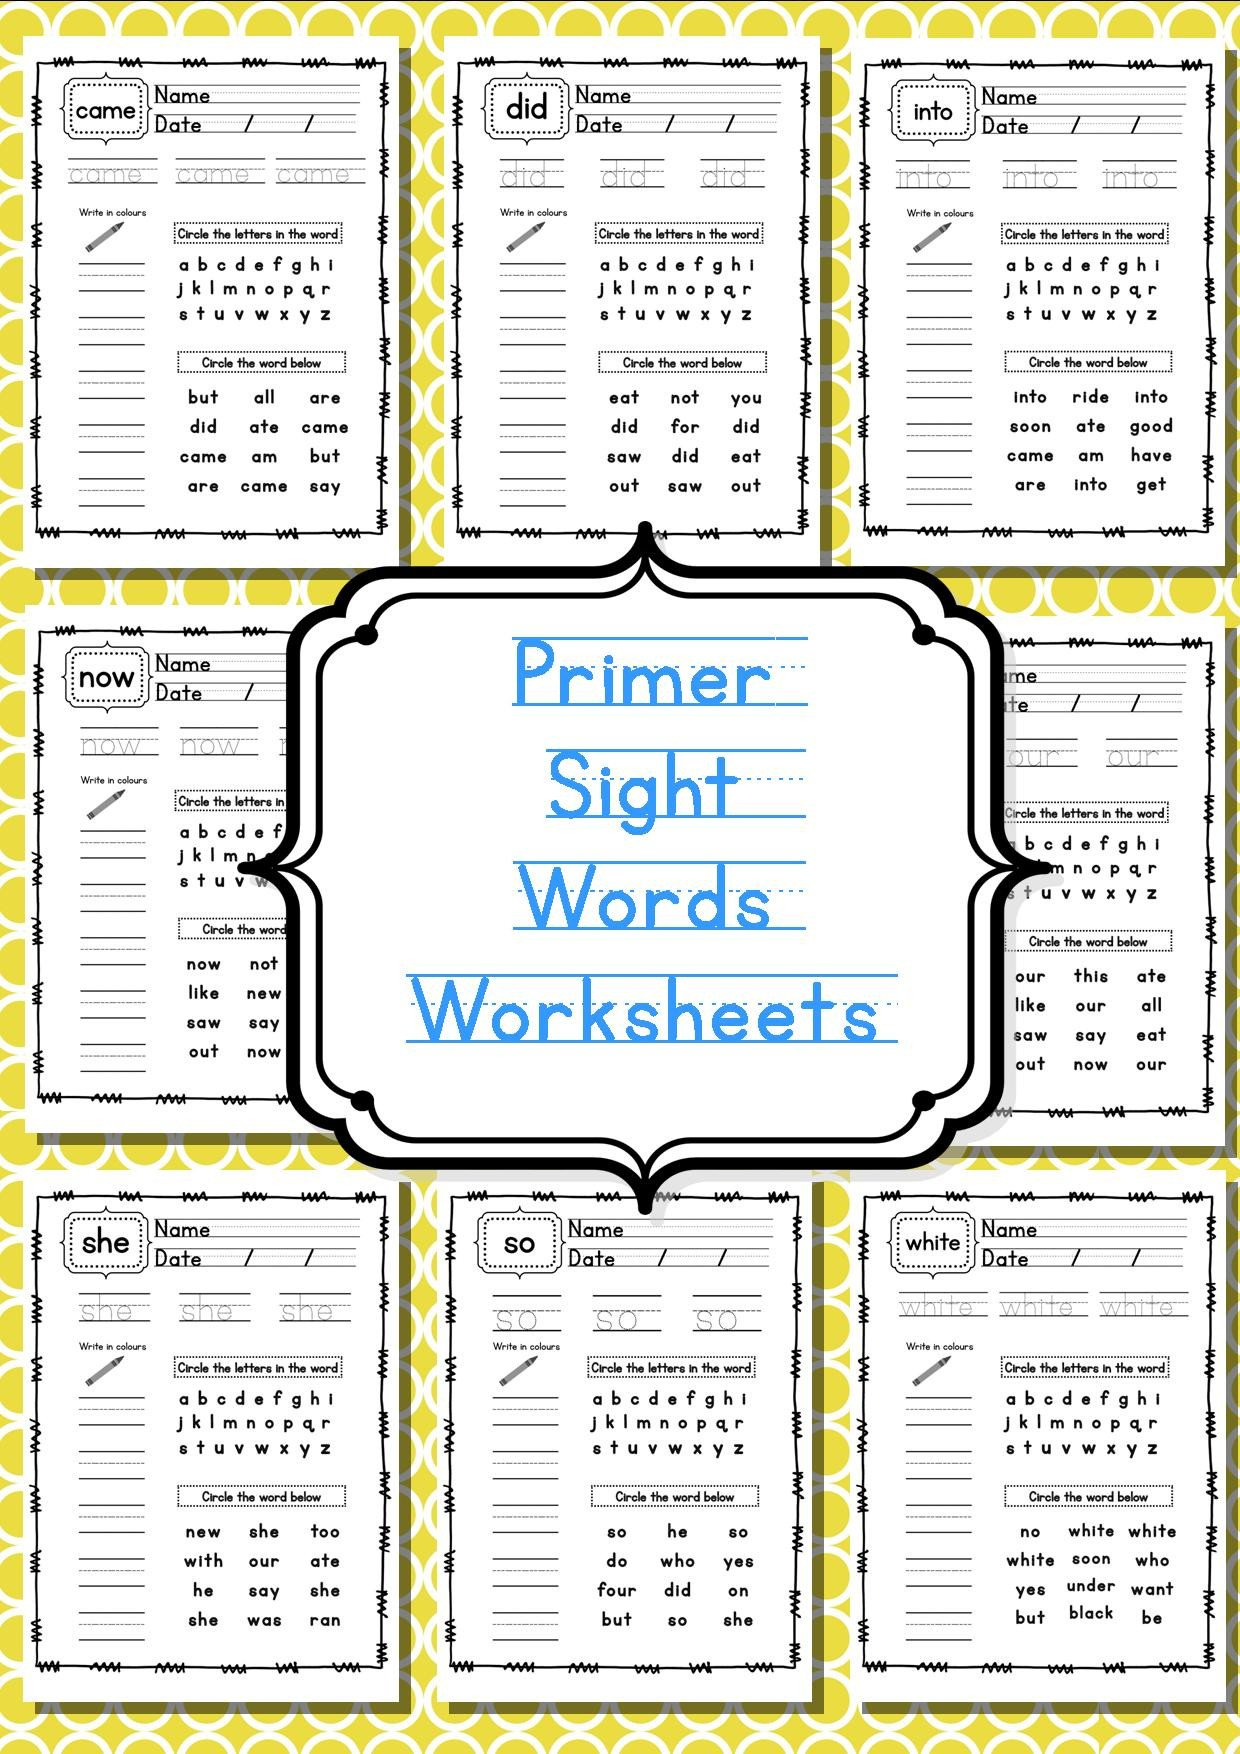 coloring sheet primer sight word worksheets teaching resources blog pages pdf printable template free